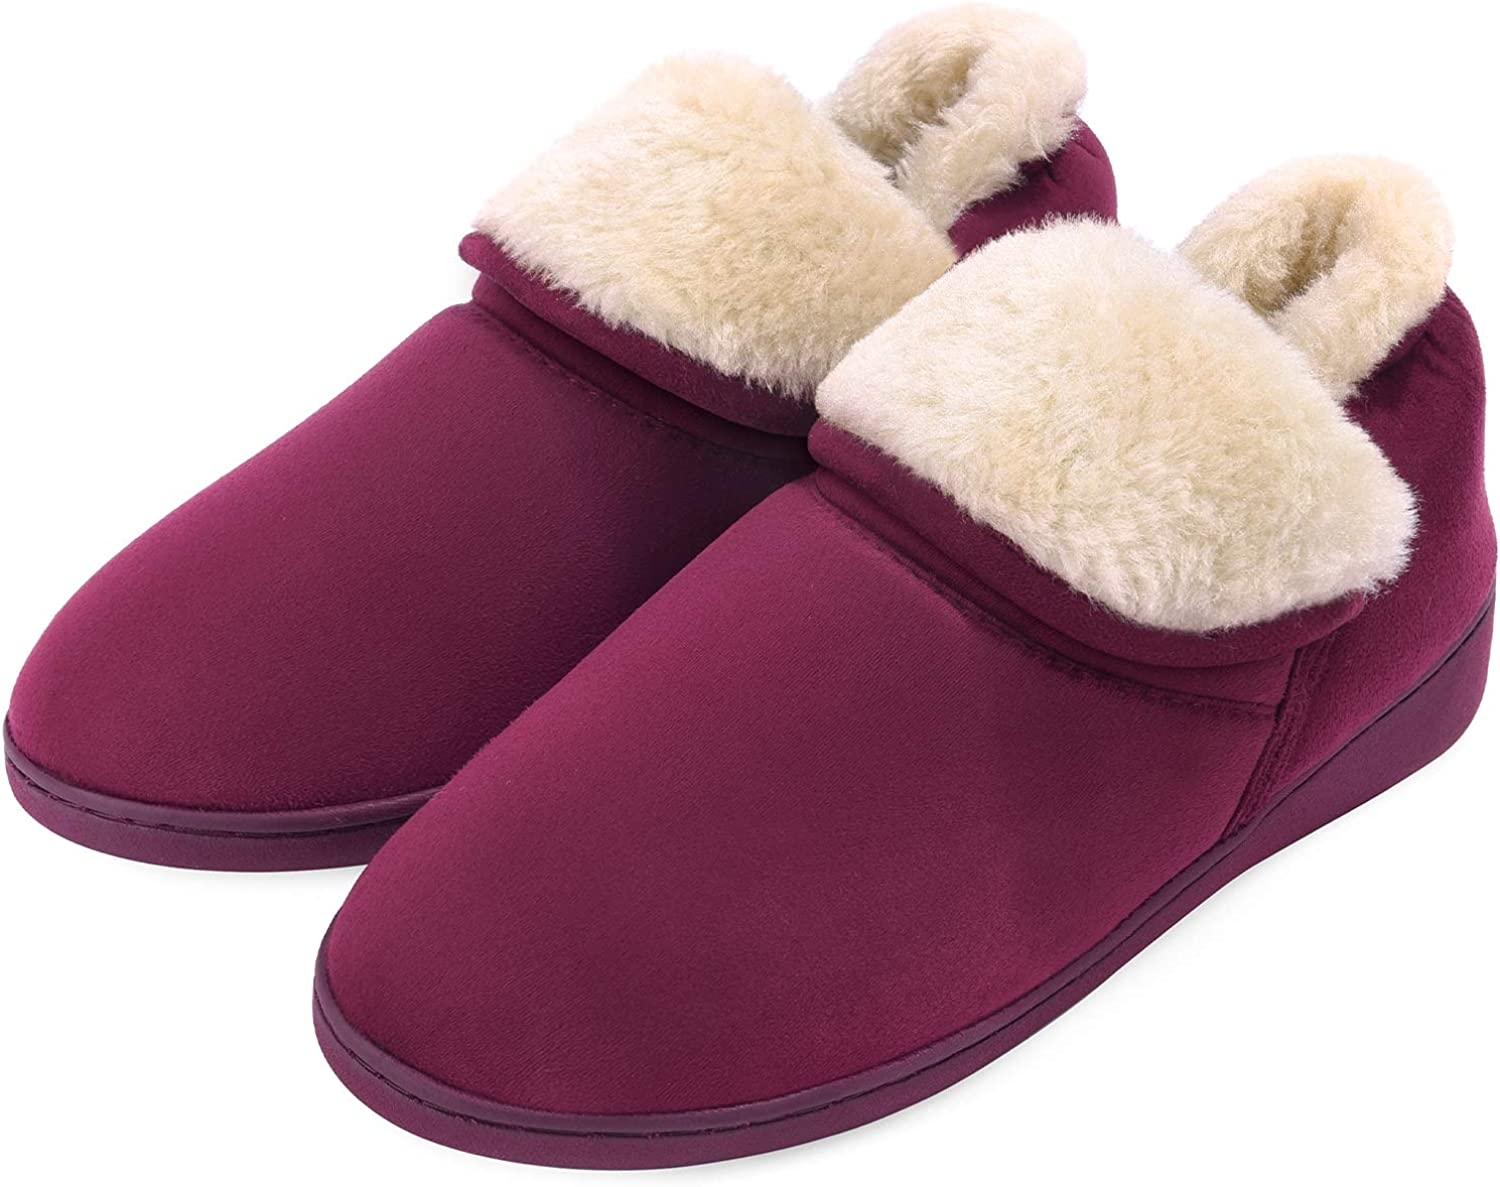 Women's Ankle Bootie Slippers Memory Foam House Shoes Fuzzy Plush Cozy Comfy Warm Indoor Outdoor Boots